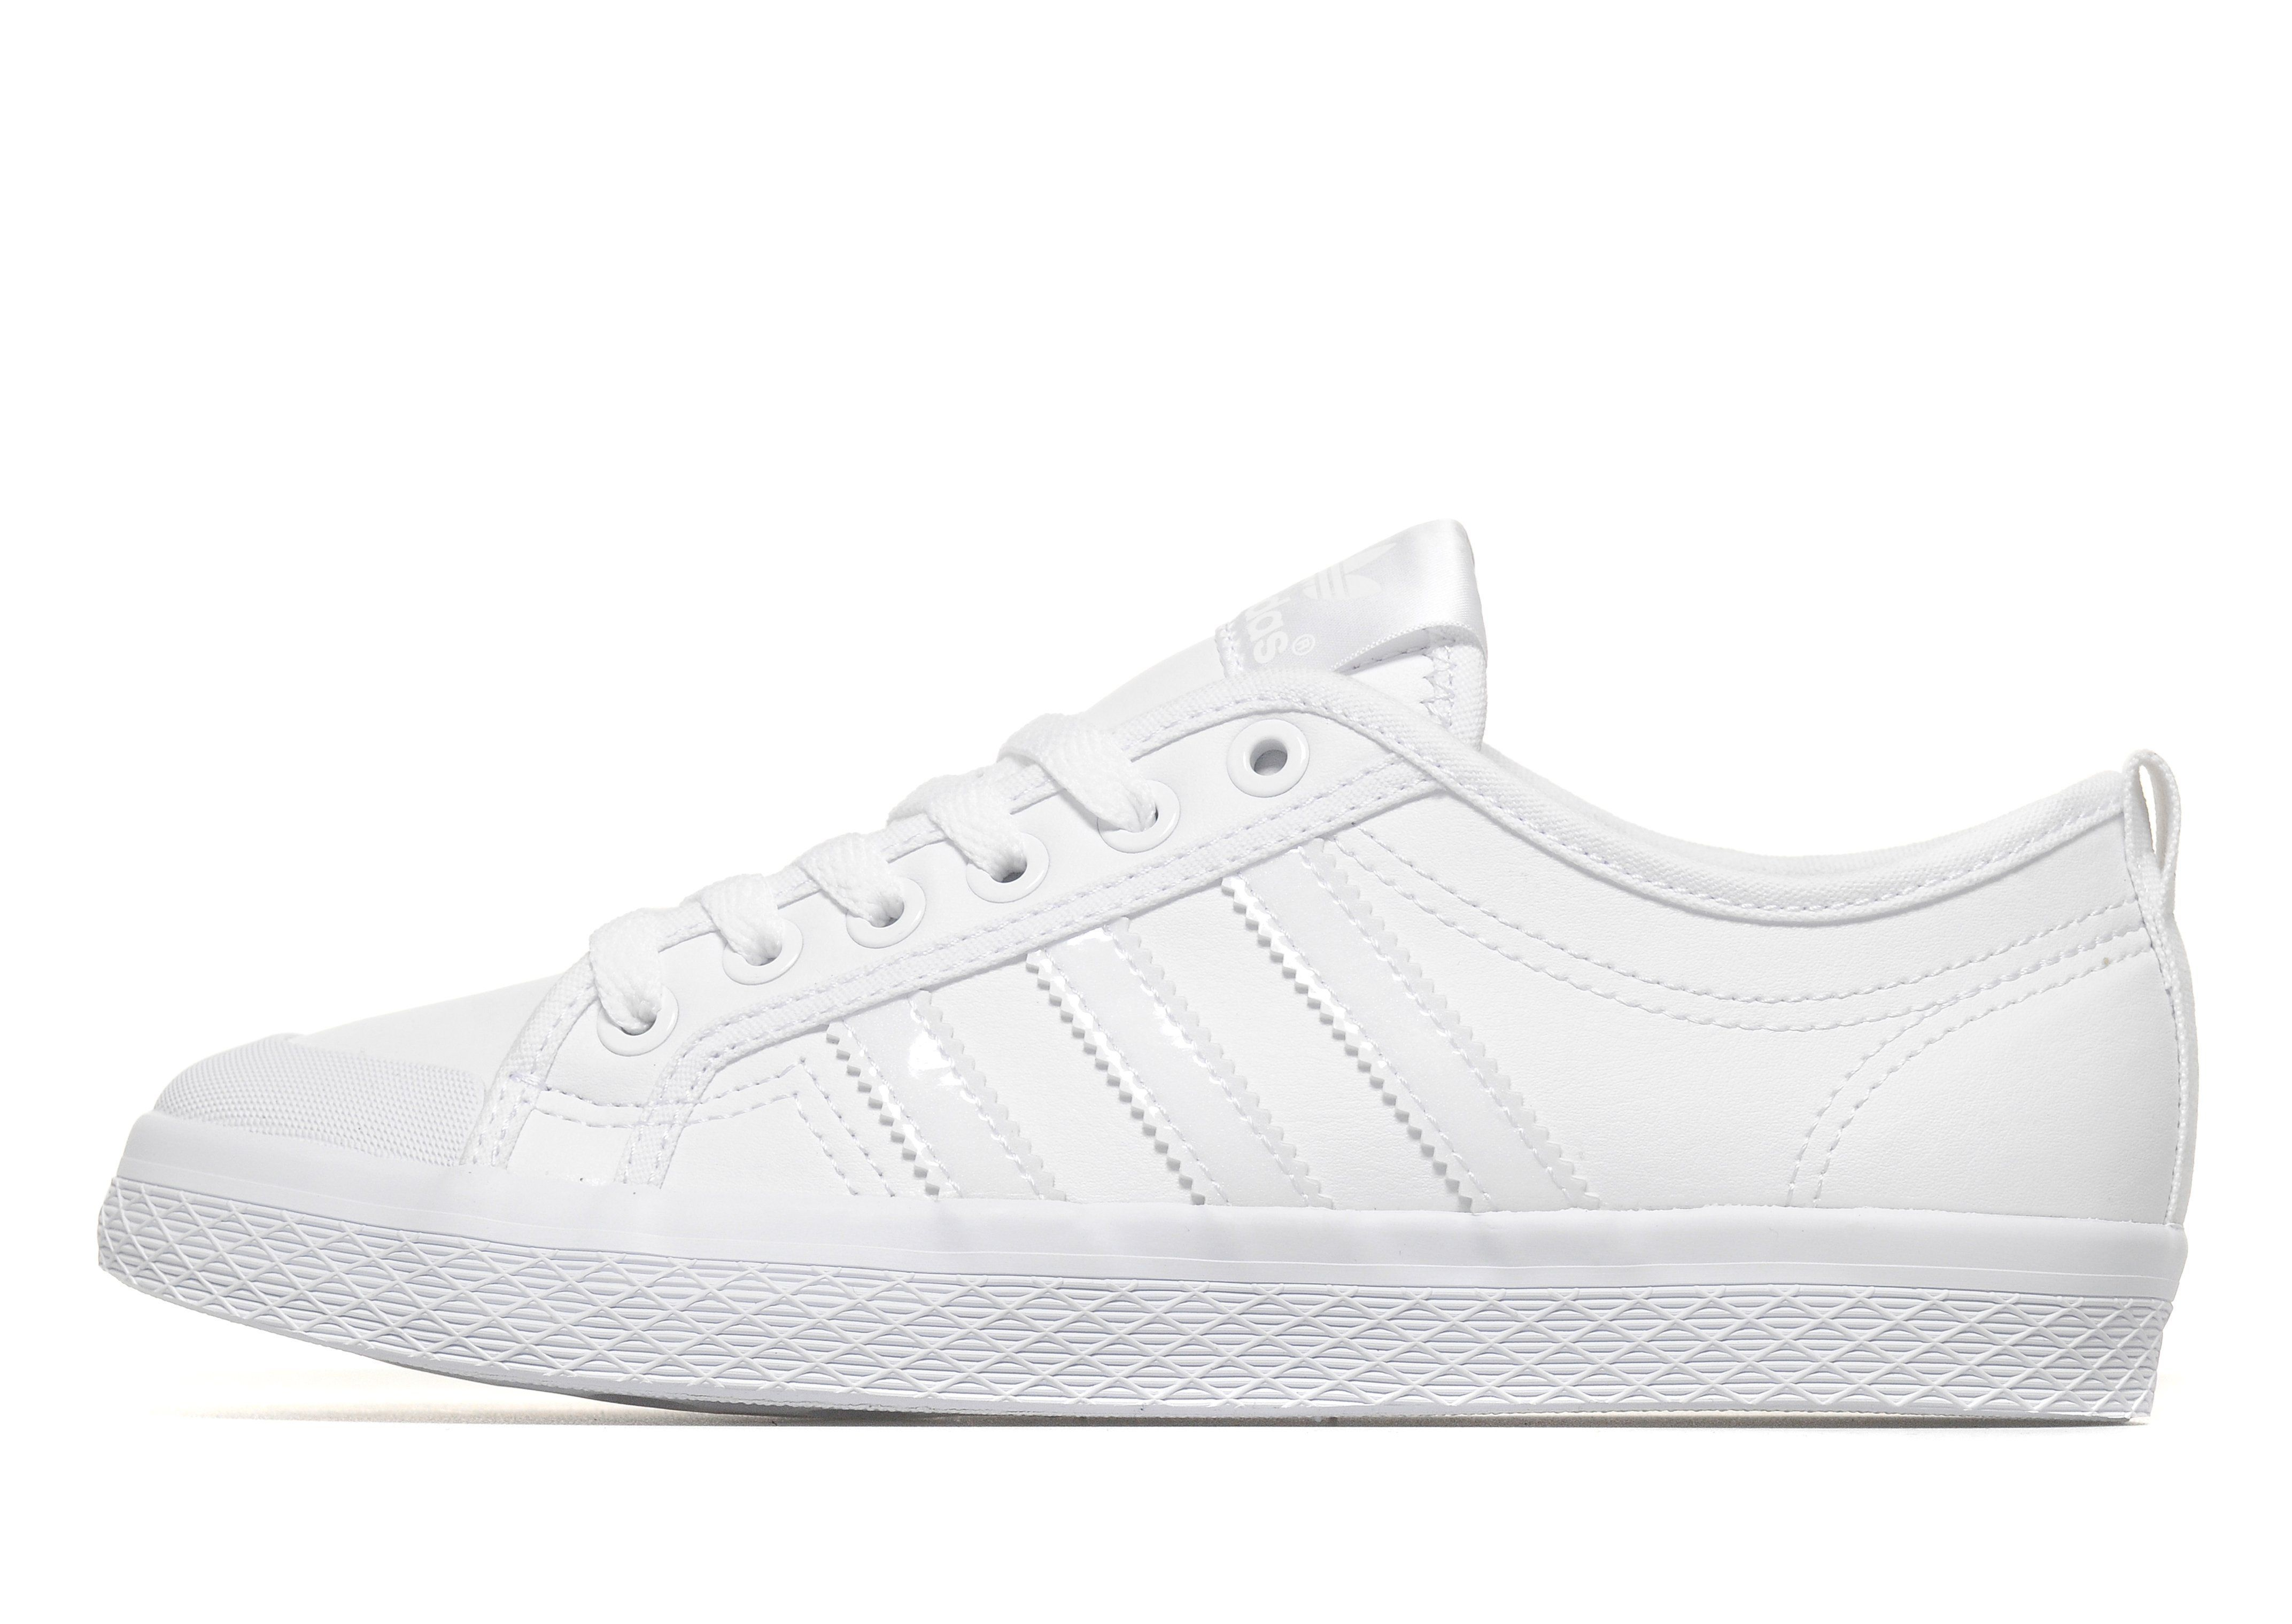 AFFORABLE STREETWEAR SHOE and SNEAKER ALTERNATIVES: Adidas, Vans, ASOS, Nike, CDG Converse, and more